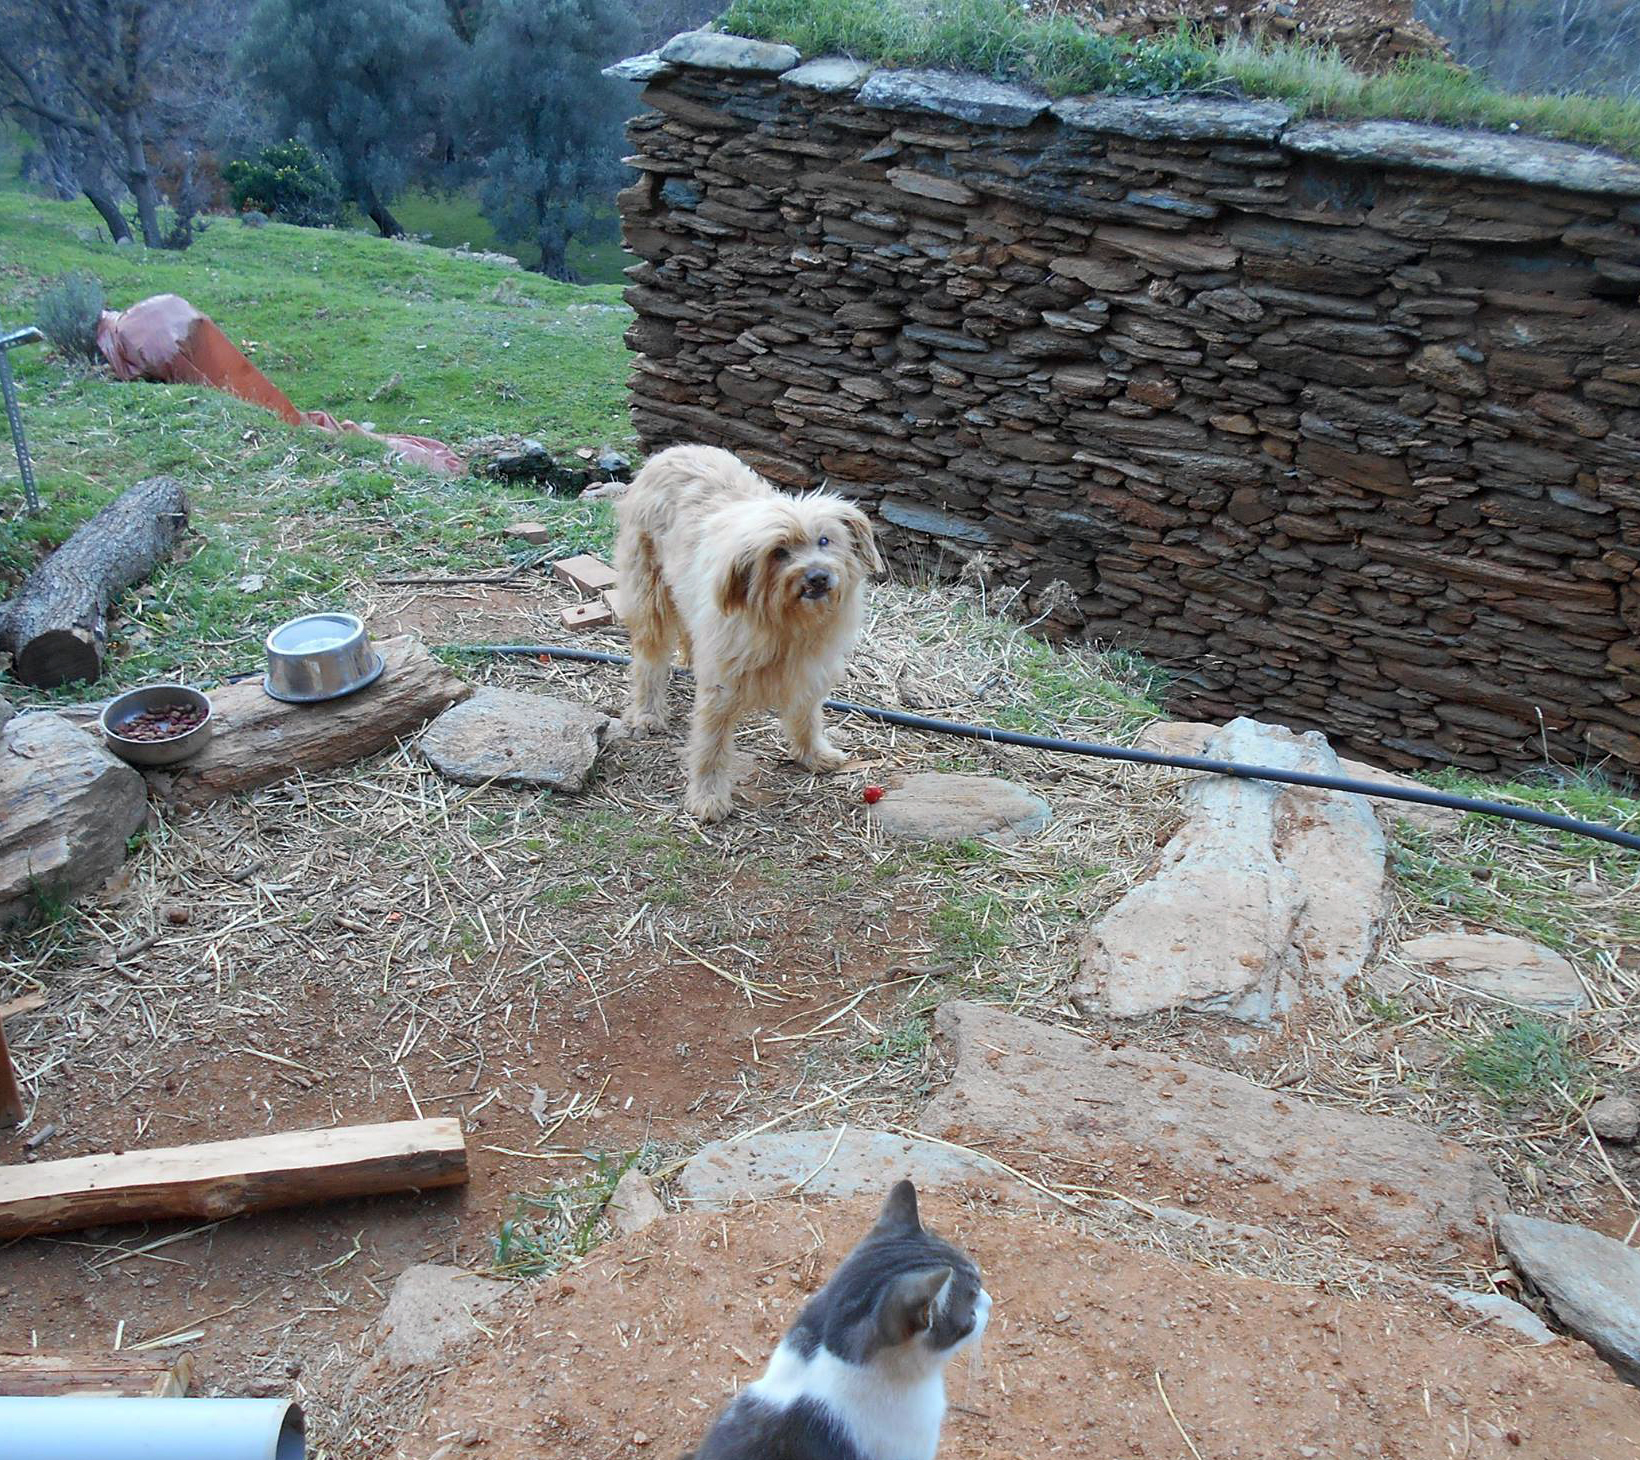 vanglouk-androsfilm-a-lost-dog-in-remata-andros-2016-dec-1